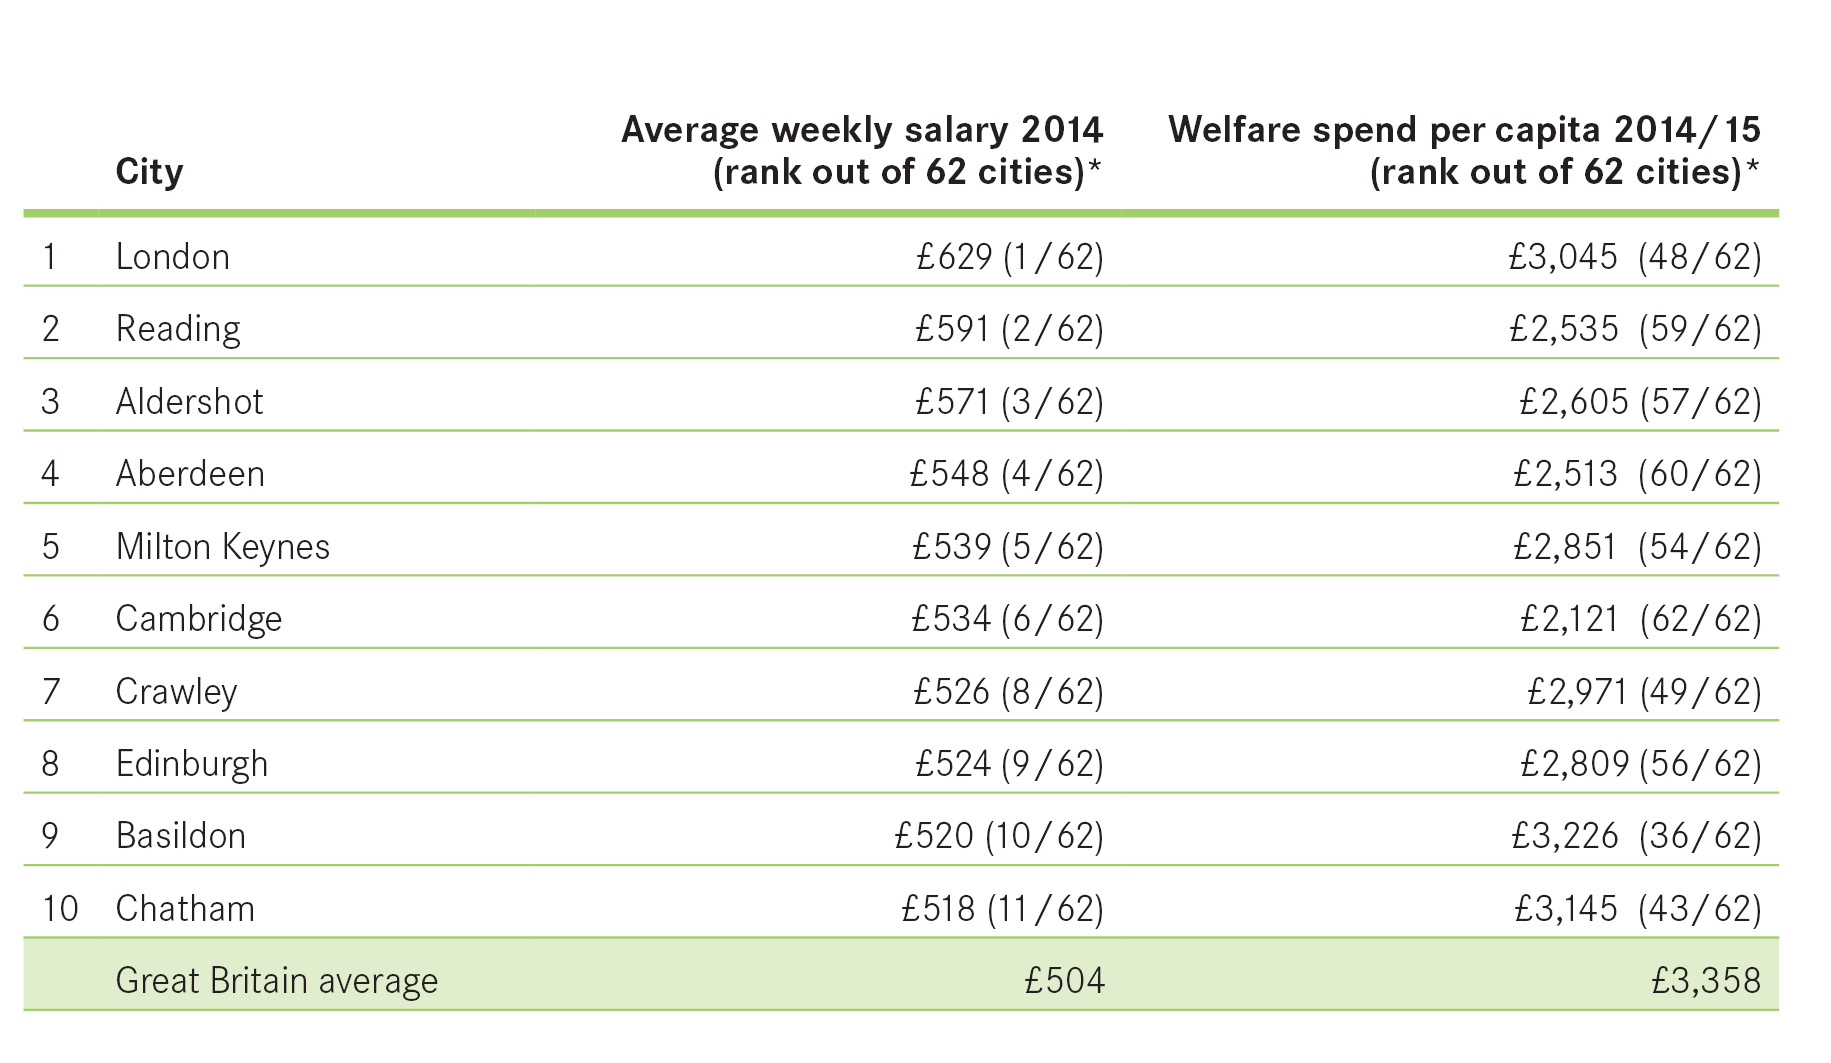 Nearly a million new jobs created in british cities since 2010 pr chart top 10 salary and welfare nvjuhfo Image collections